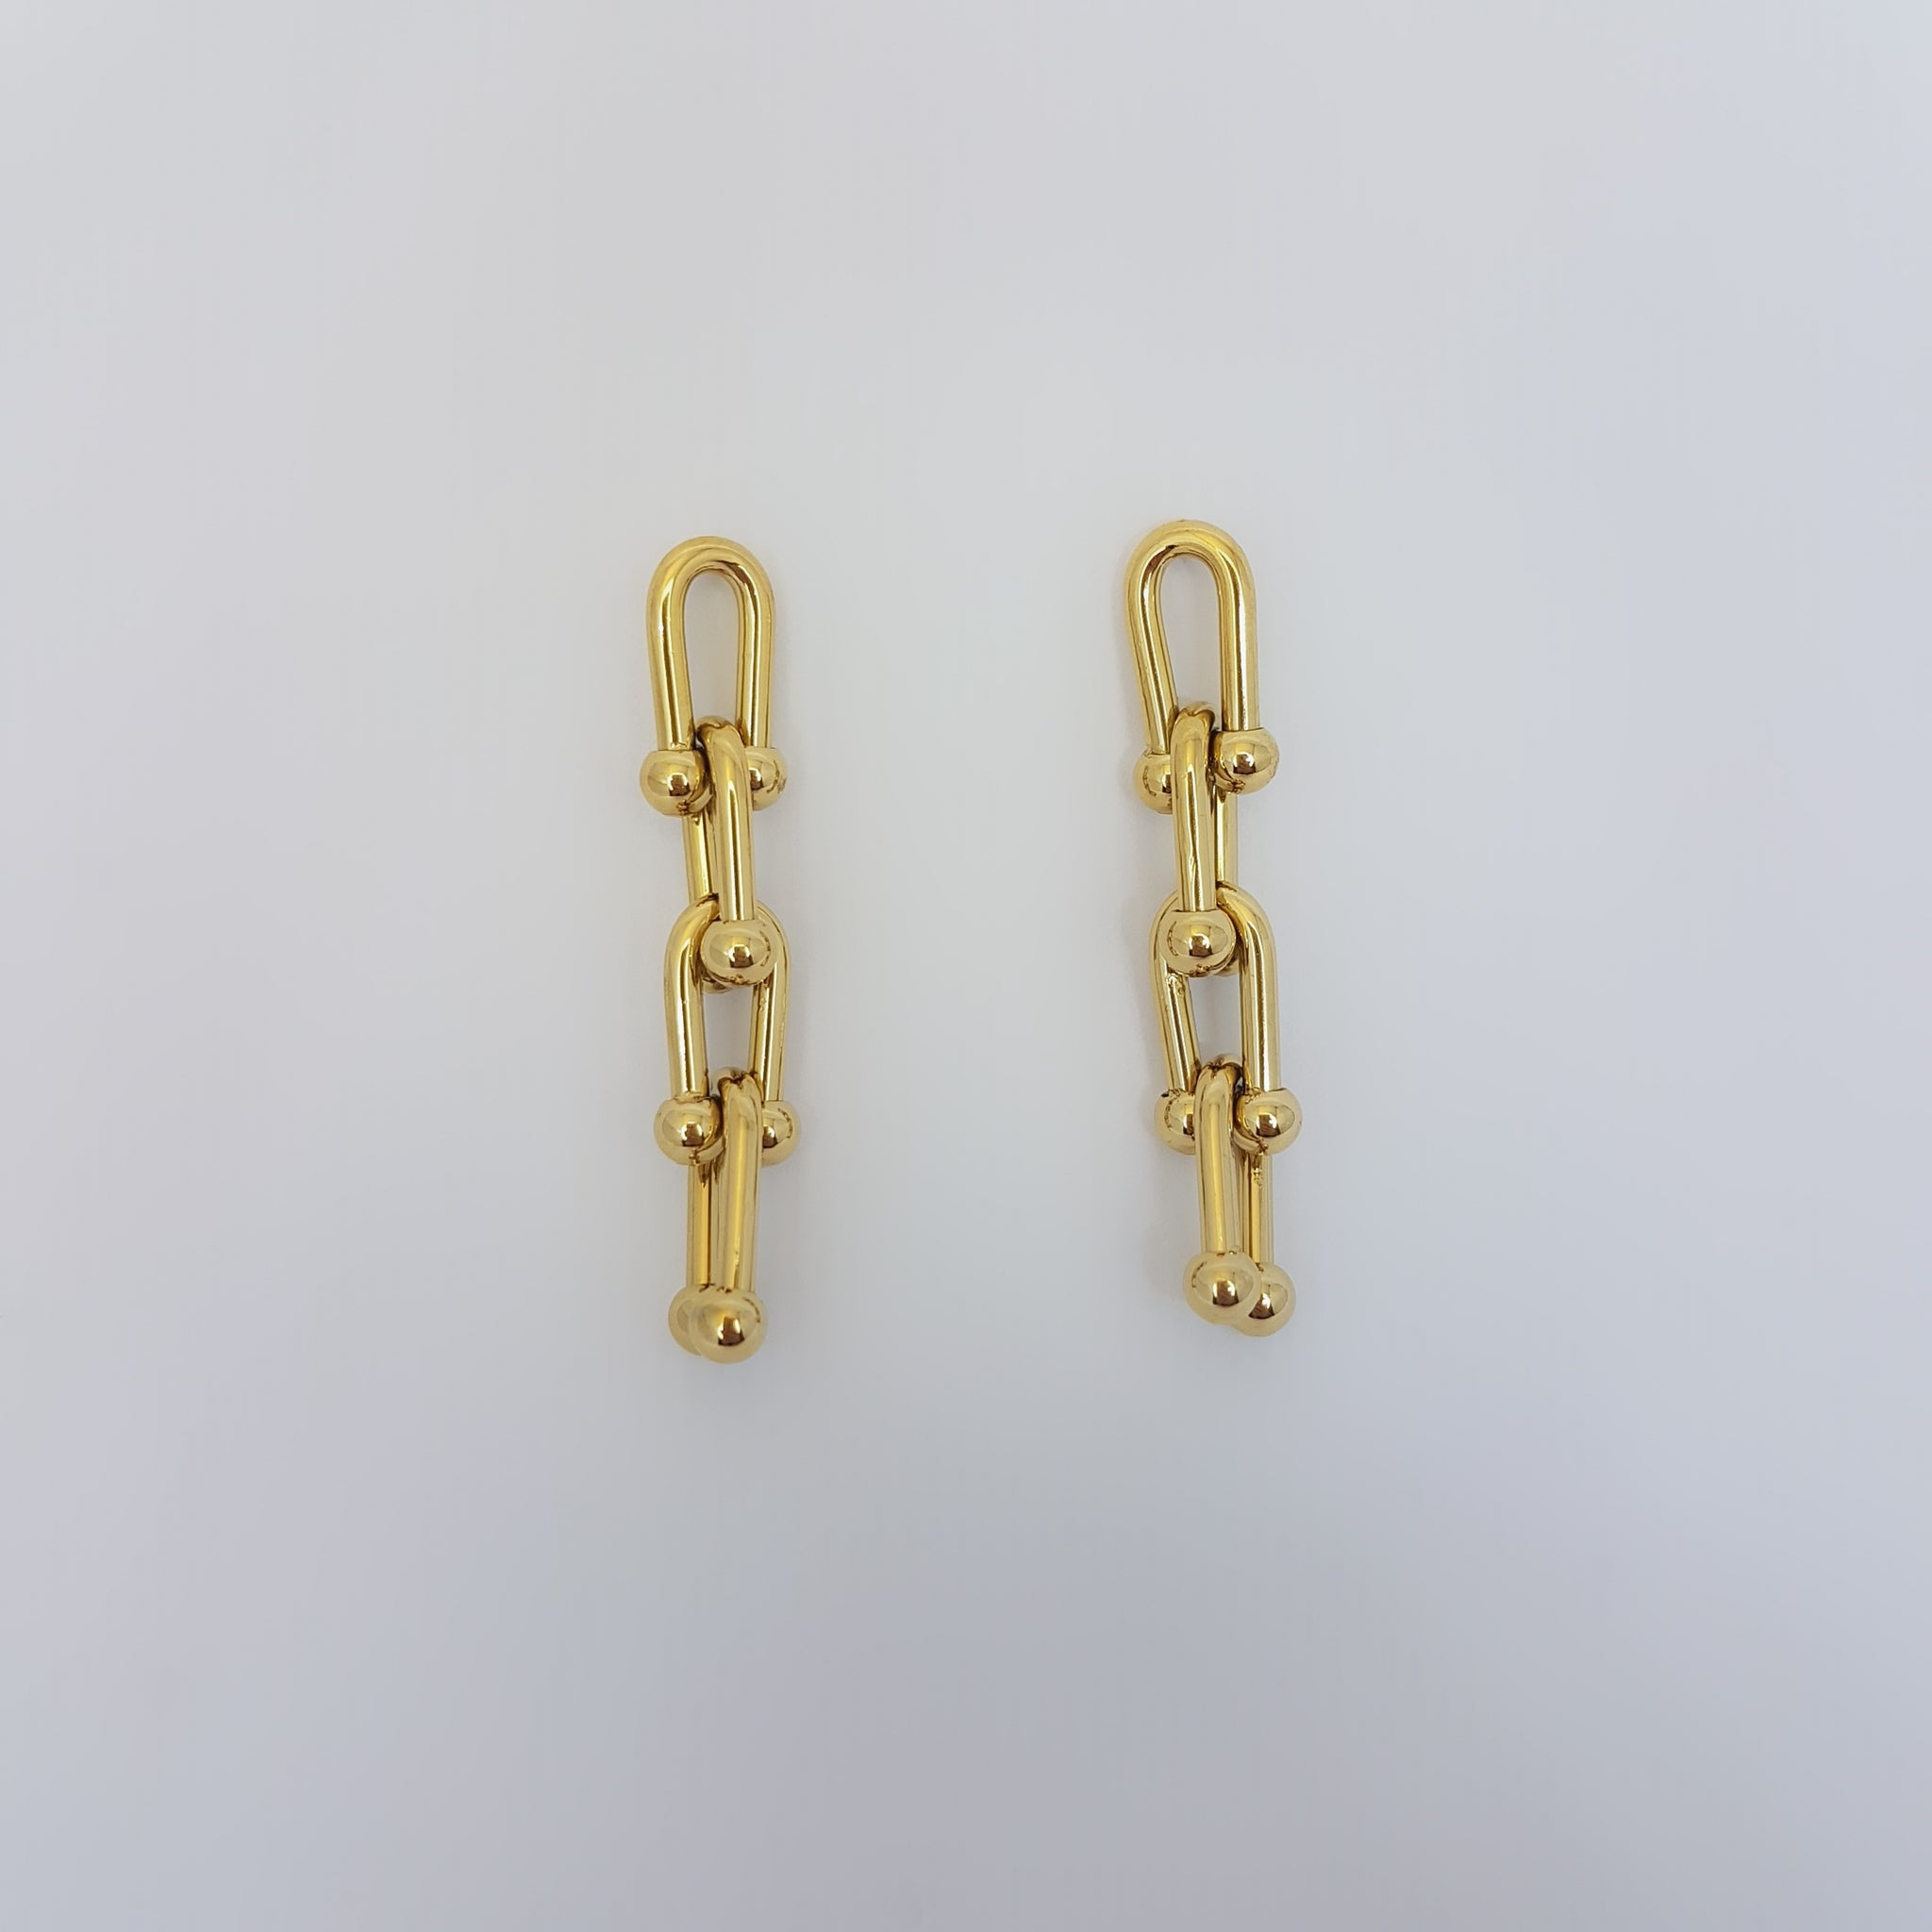 KIEV EARRINGS